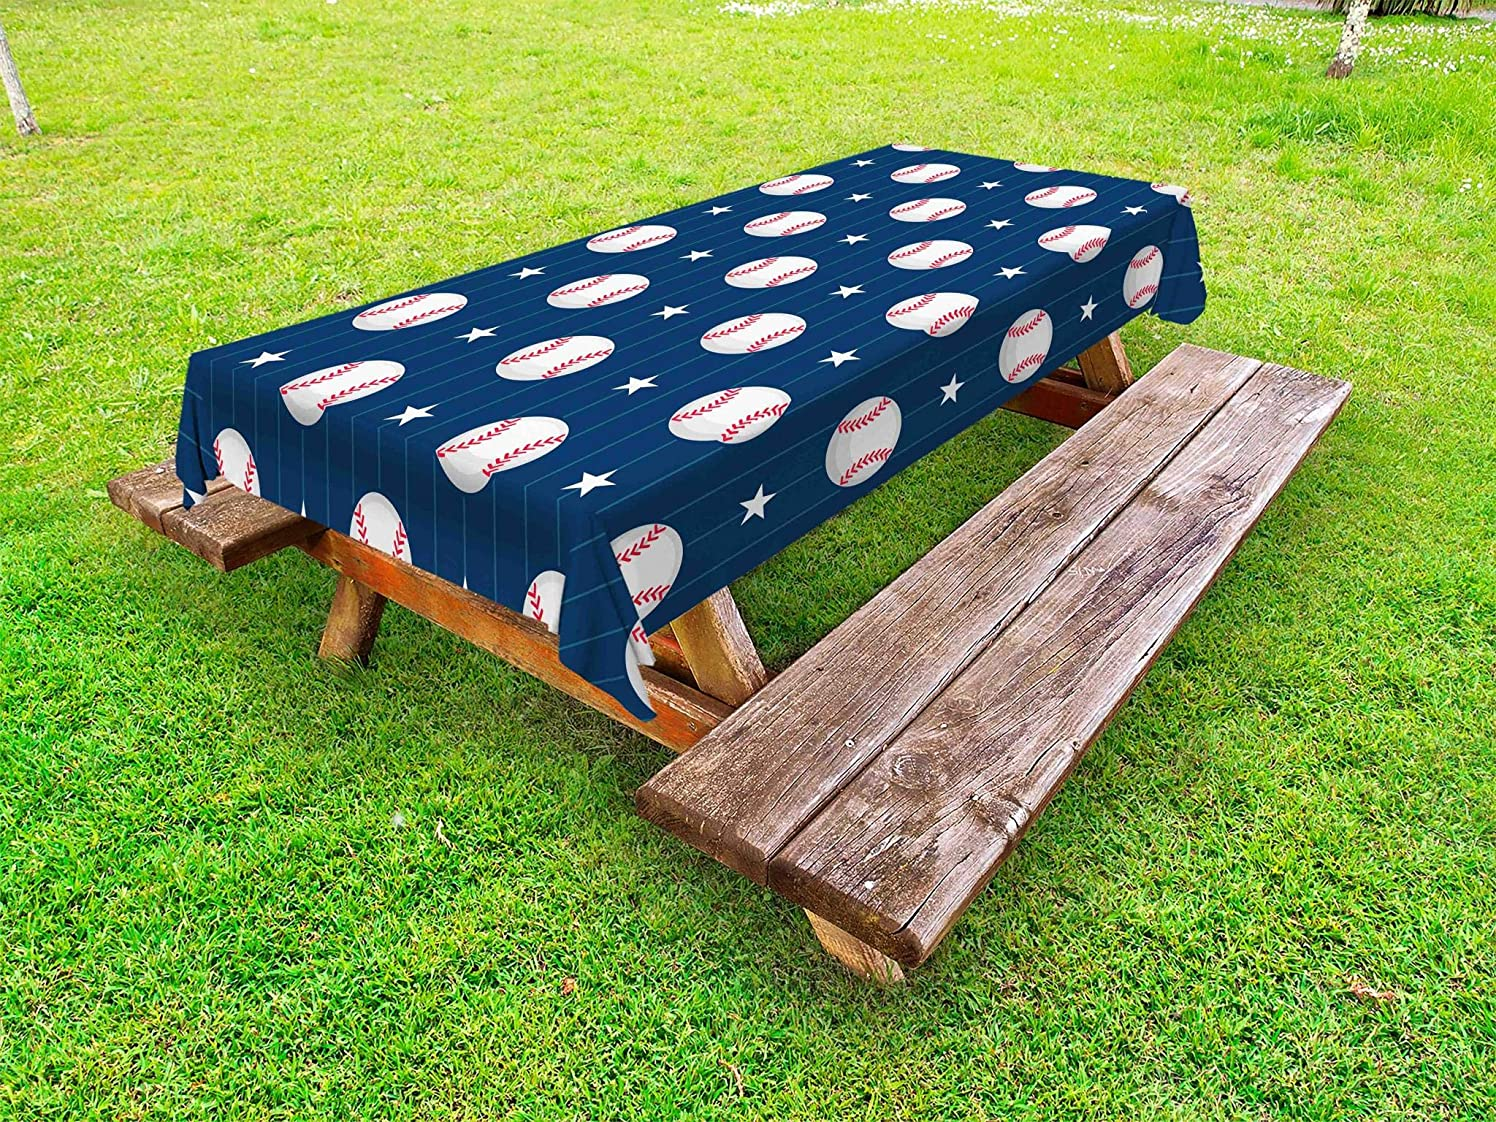 Ambesonne Sports Outdoor Tablecloth, Baseball Patterns on Vertical Striped Background Stars Artistic Design, Decorative Washable Picnic Table Cloth, 58 X 84 Inches, Blue Red